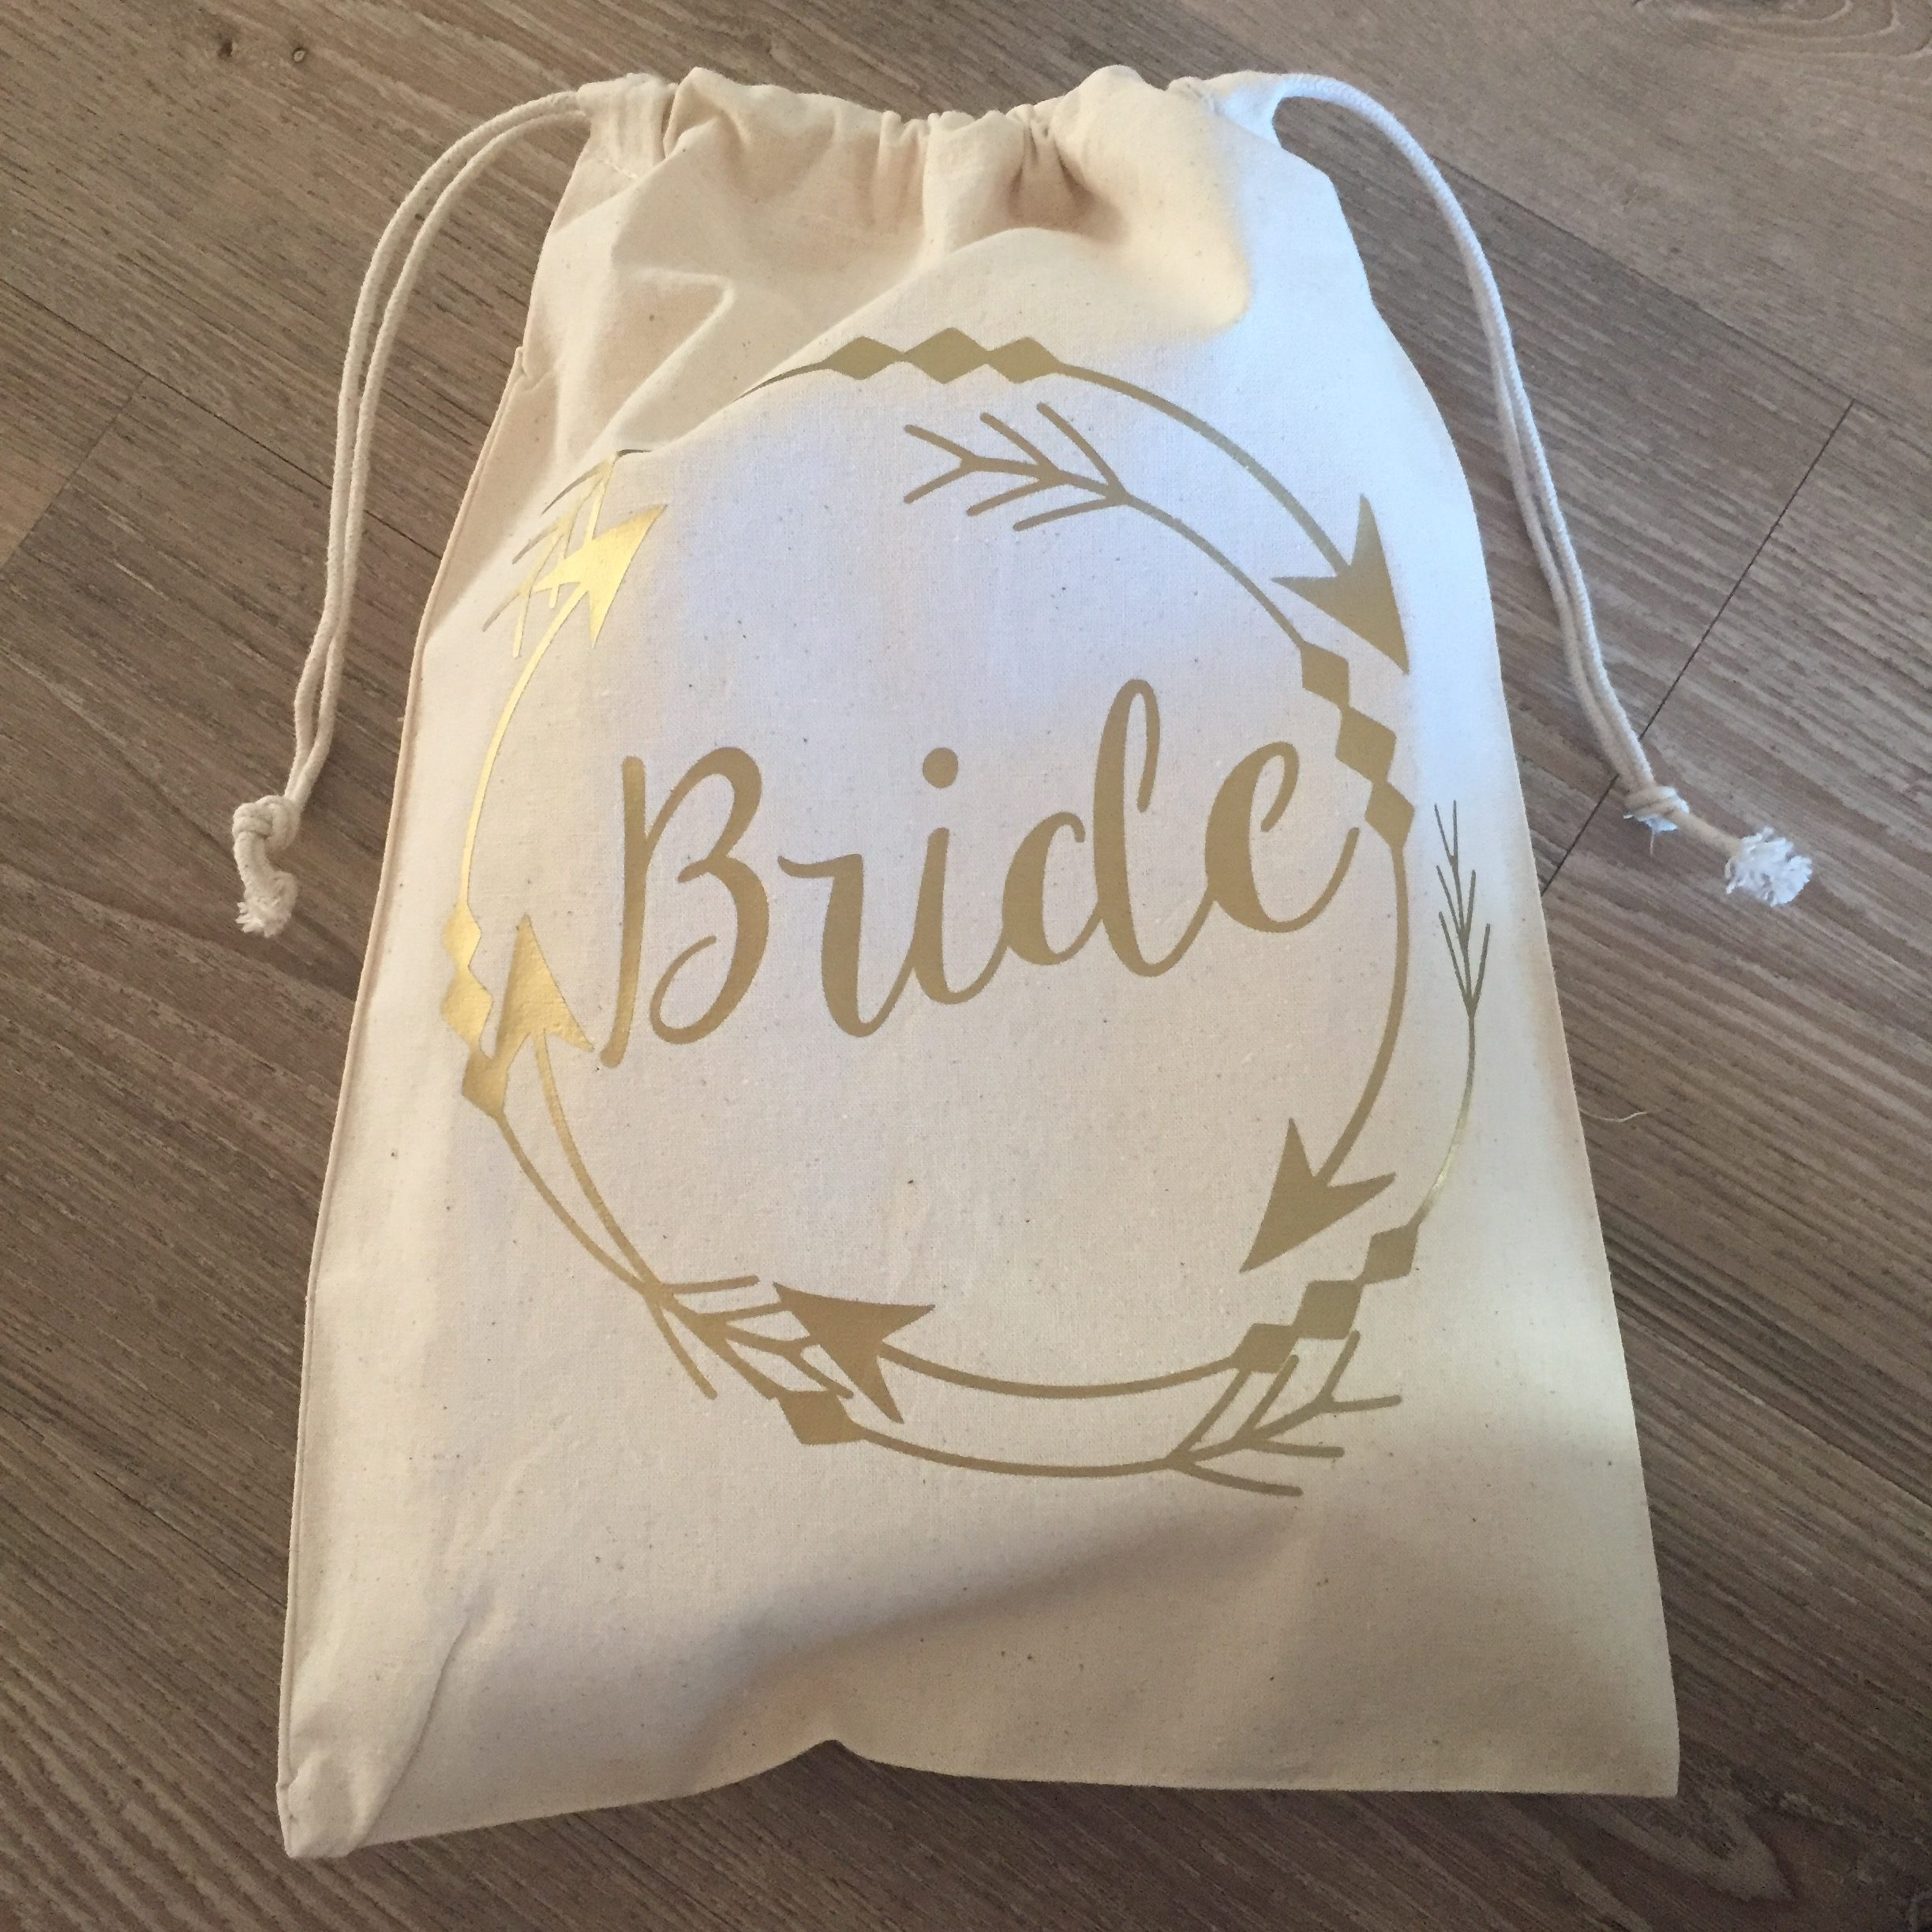 bride-drawstring-bag